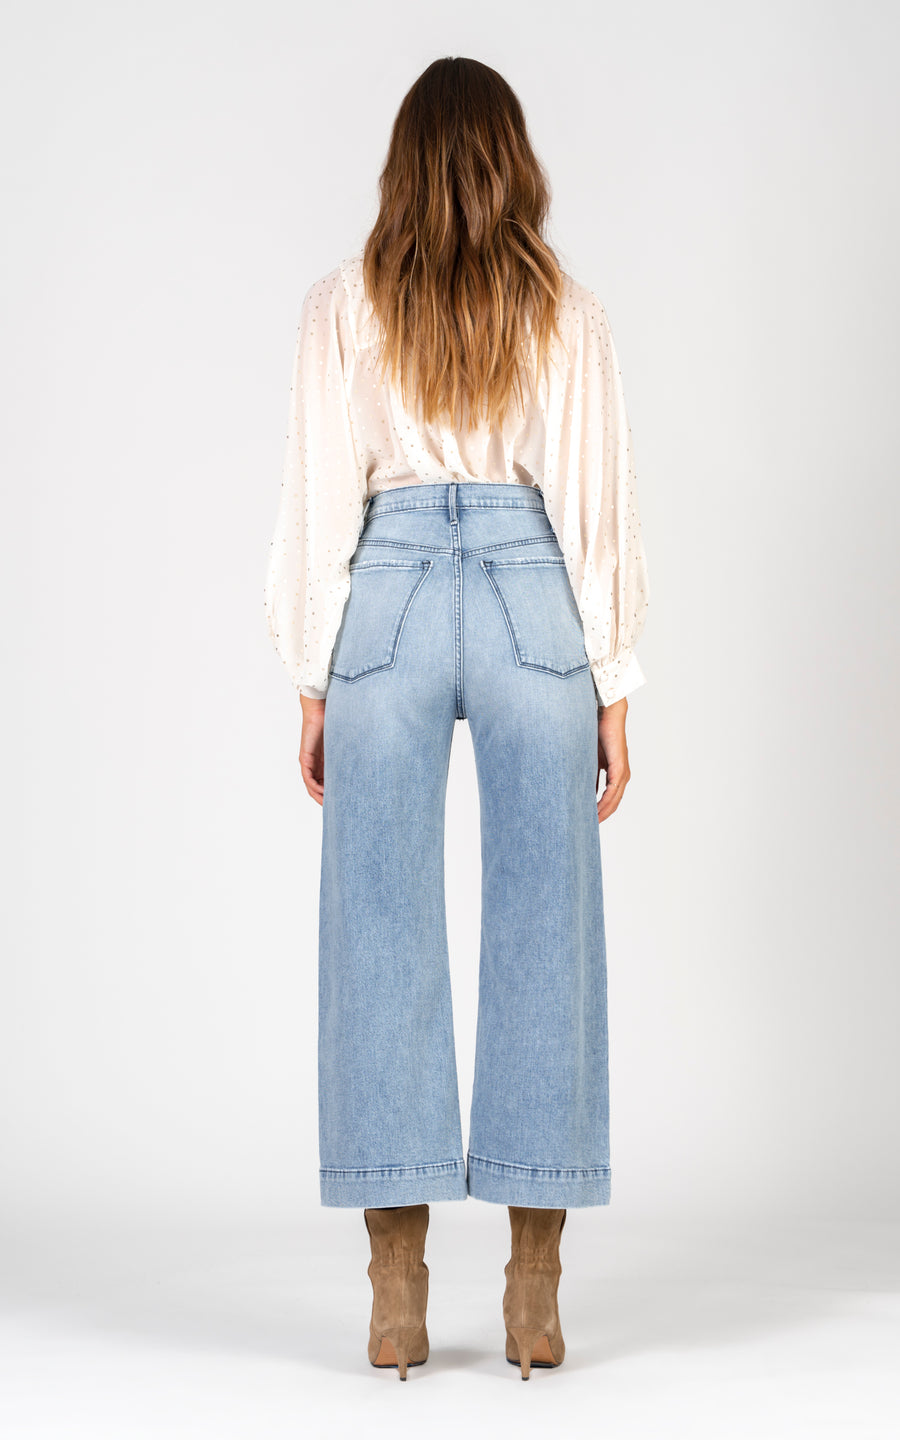 Emma Double Yoke Wide Leg Crop - Back To Basics